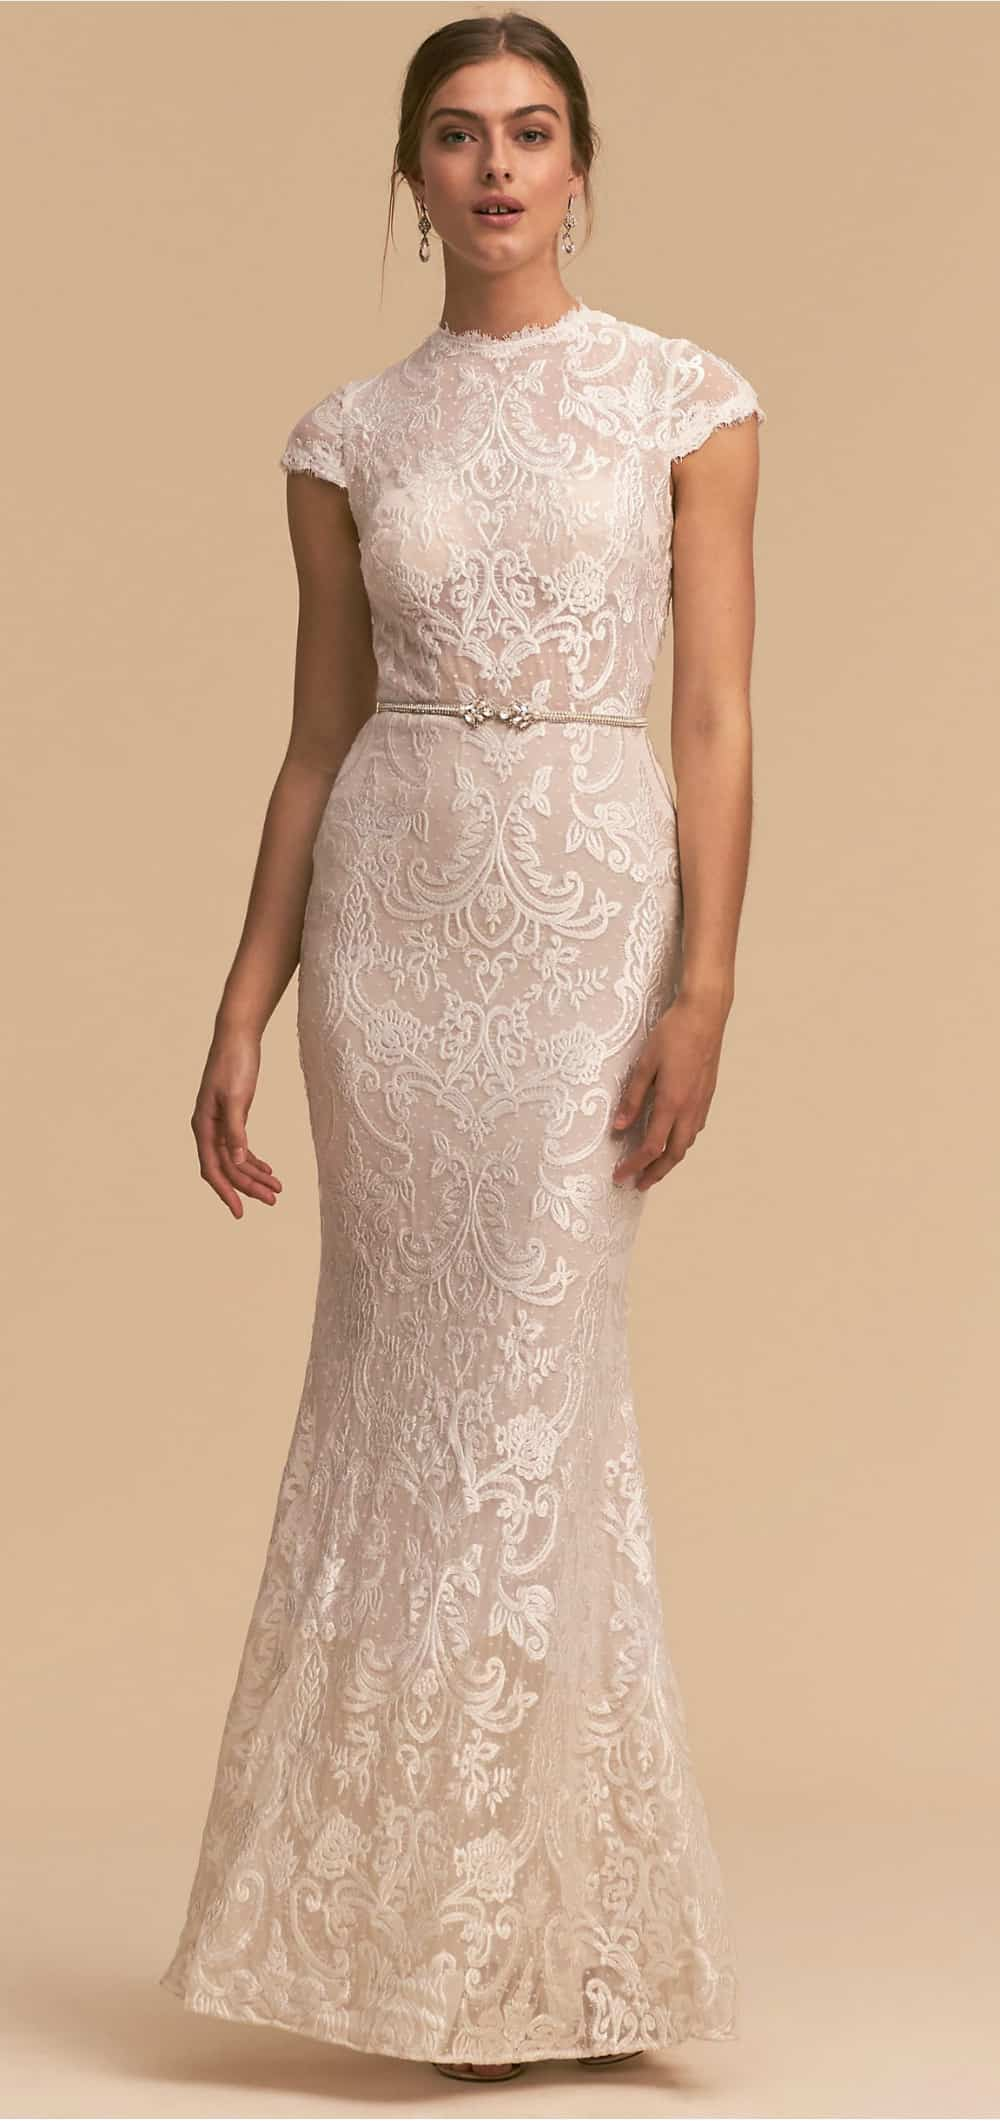 ivory lace gown with short sleeves - beach wedding renewal dresses